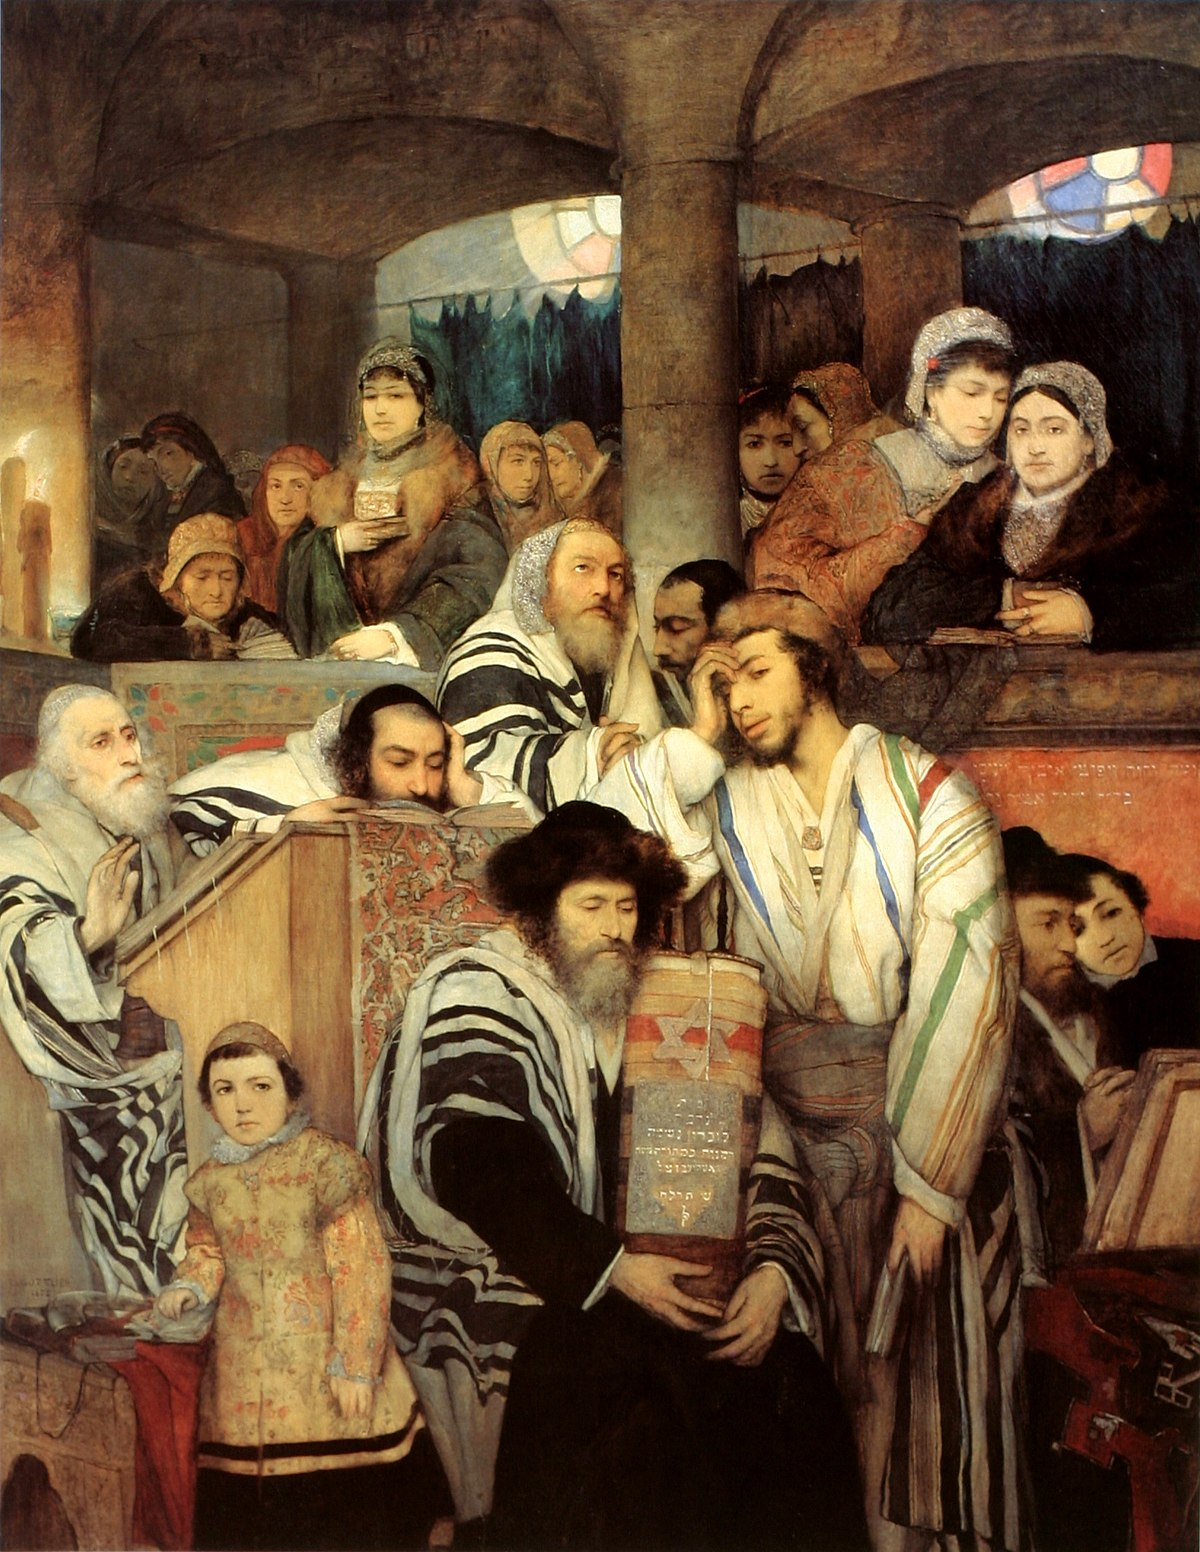 1200px-maurycy_gottlieb_jews_praying_in_the_synagogue_on_yom_kippur.jpg